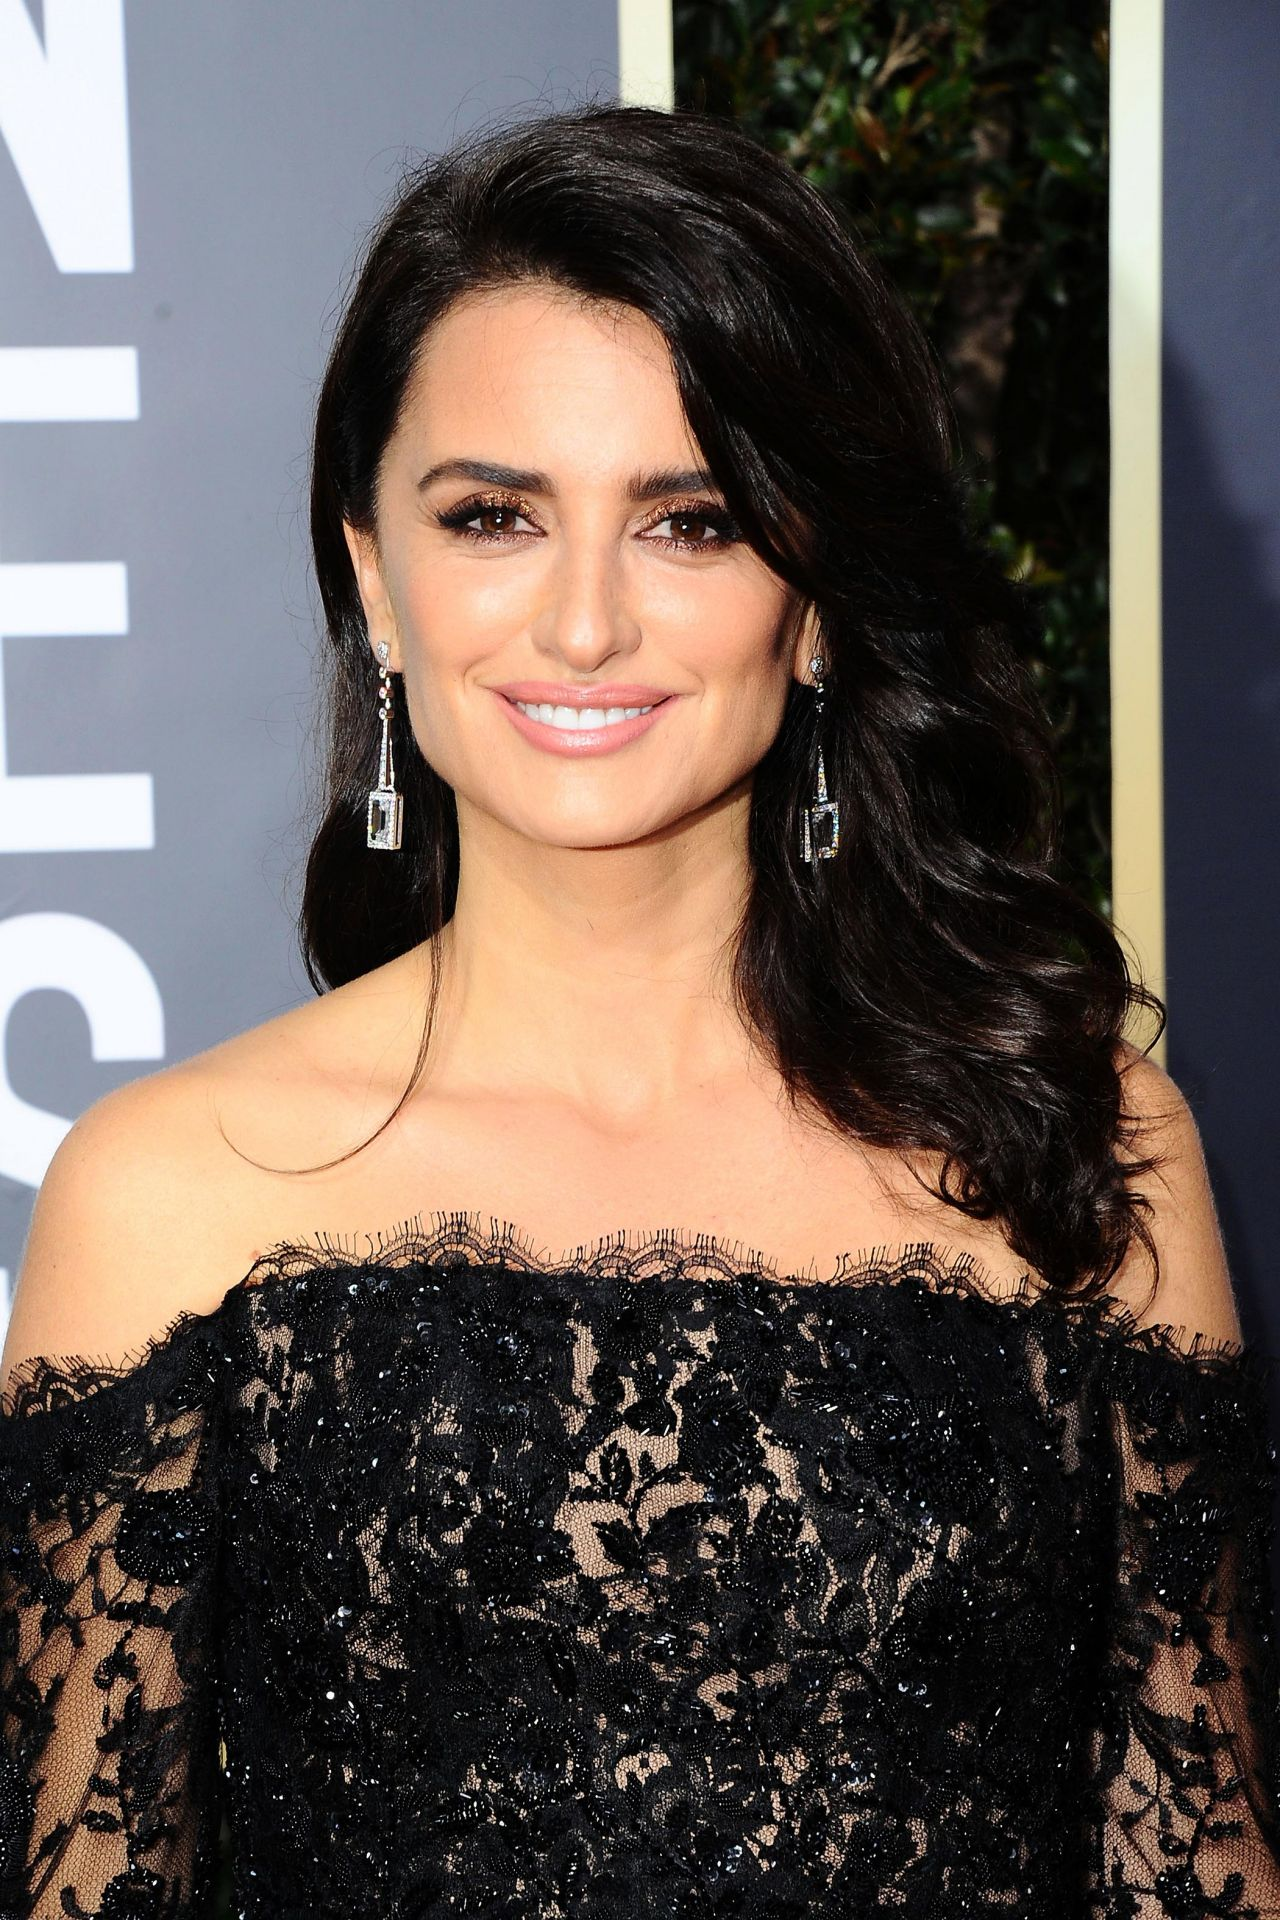 Penelope Cruz - Golden Globe Awards 2018 in Beverly Hills Penelope Cruz